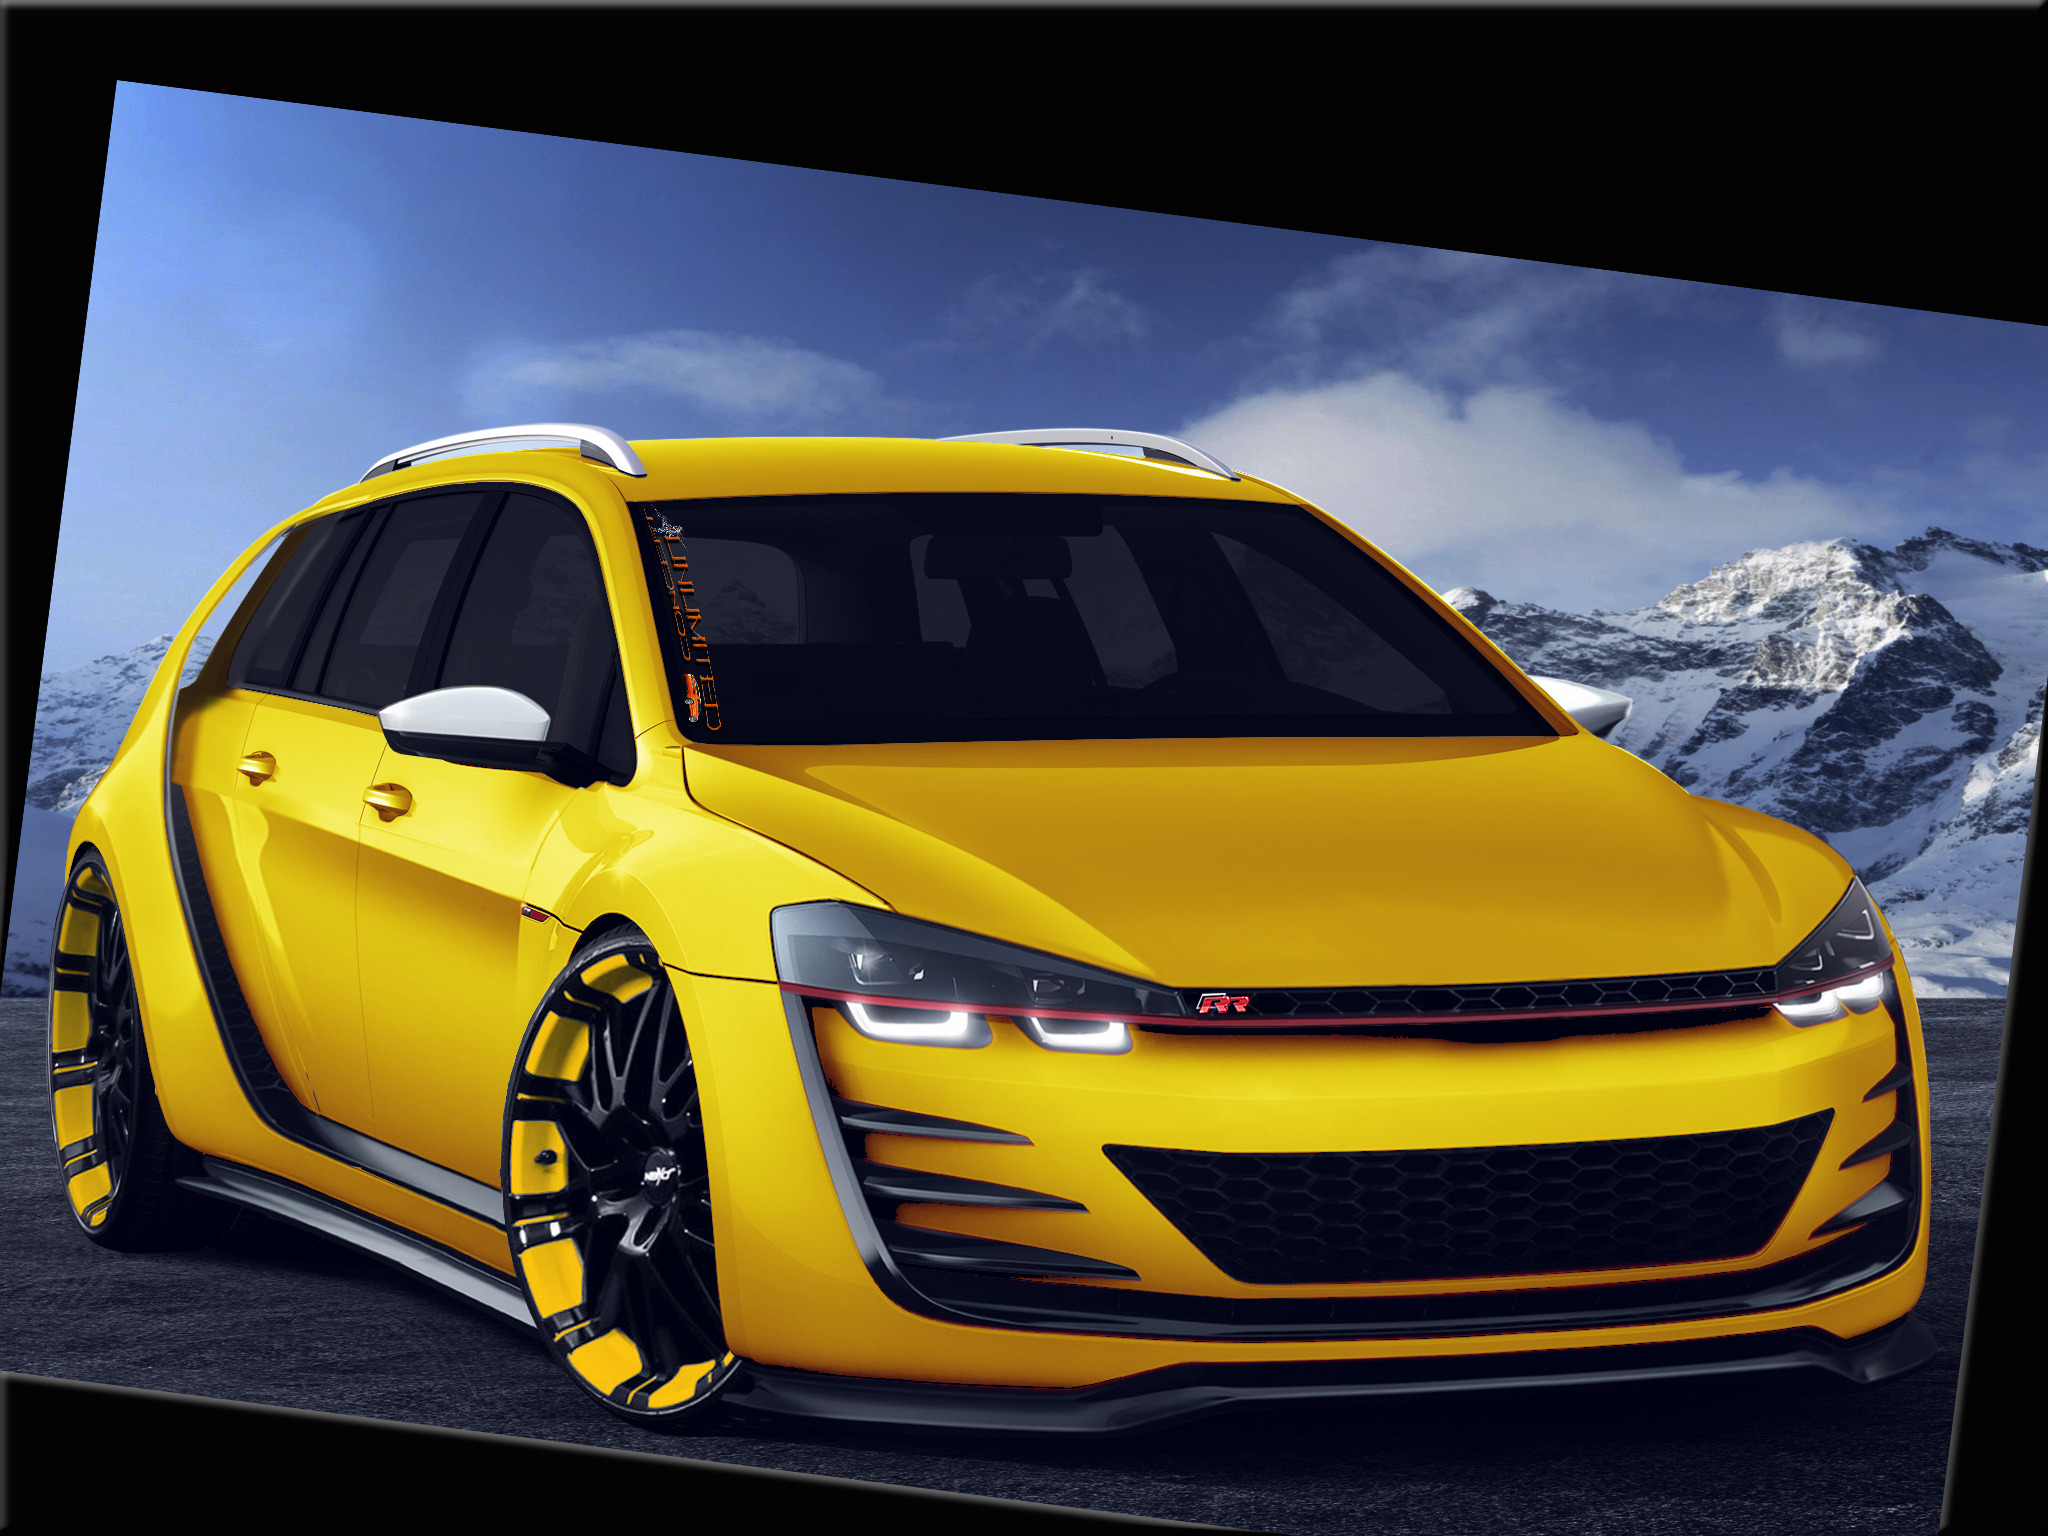 vw golf 7 variant rr vt unlimited concept unlimited. Black Bedroom Furniture Sets. Home Design Ideas